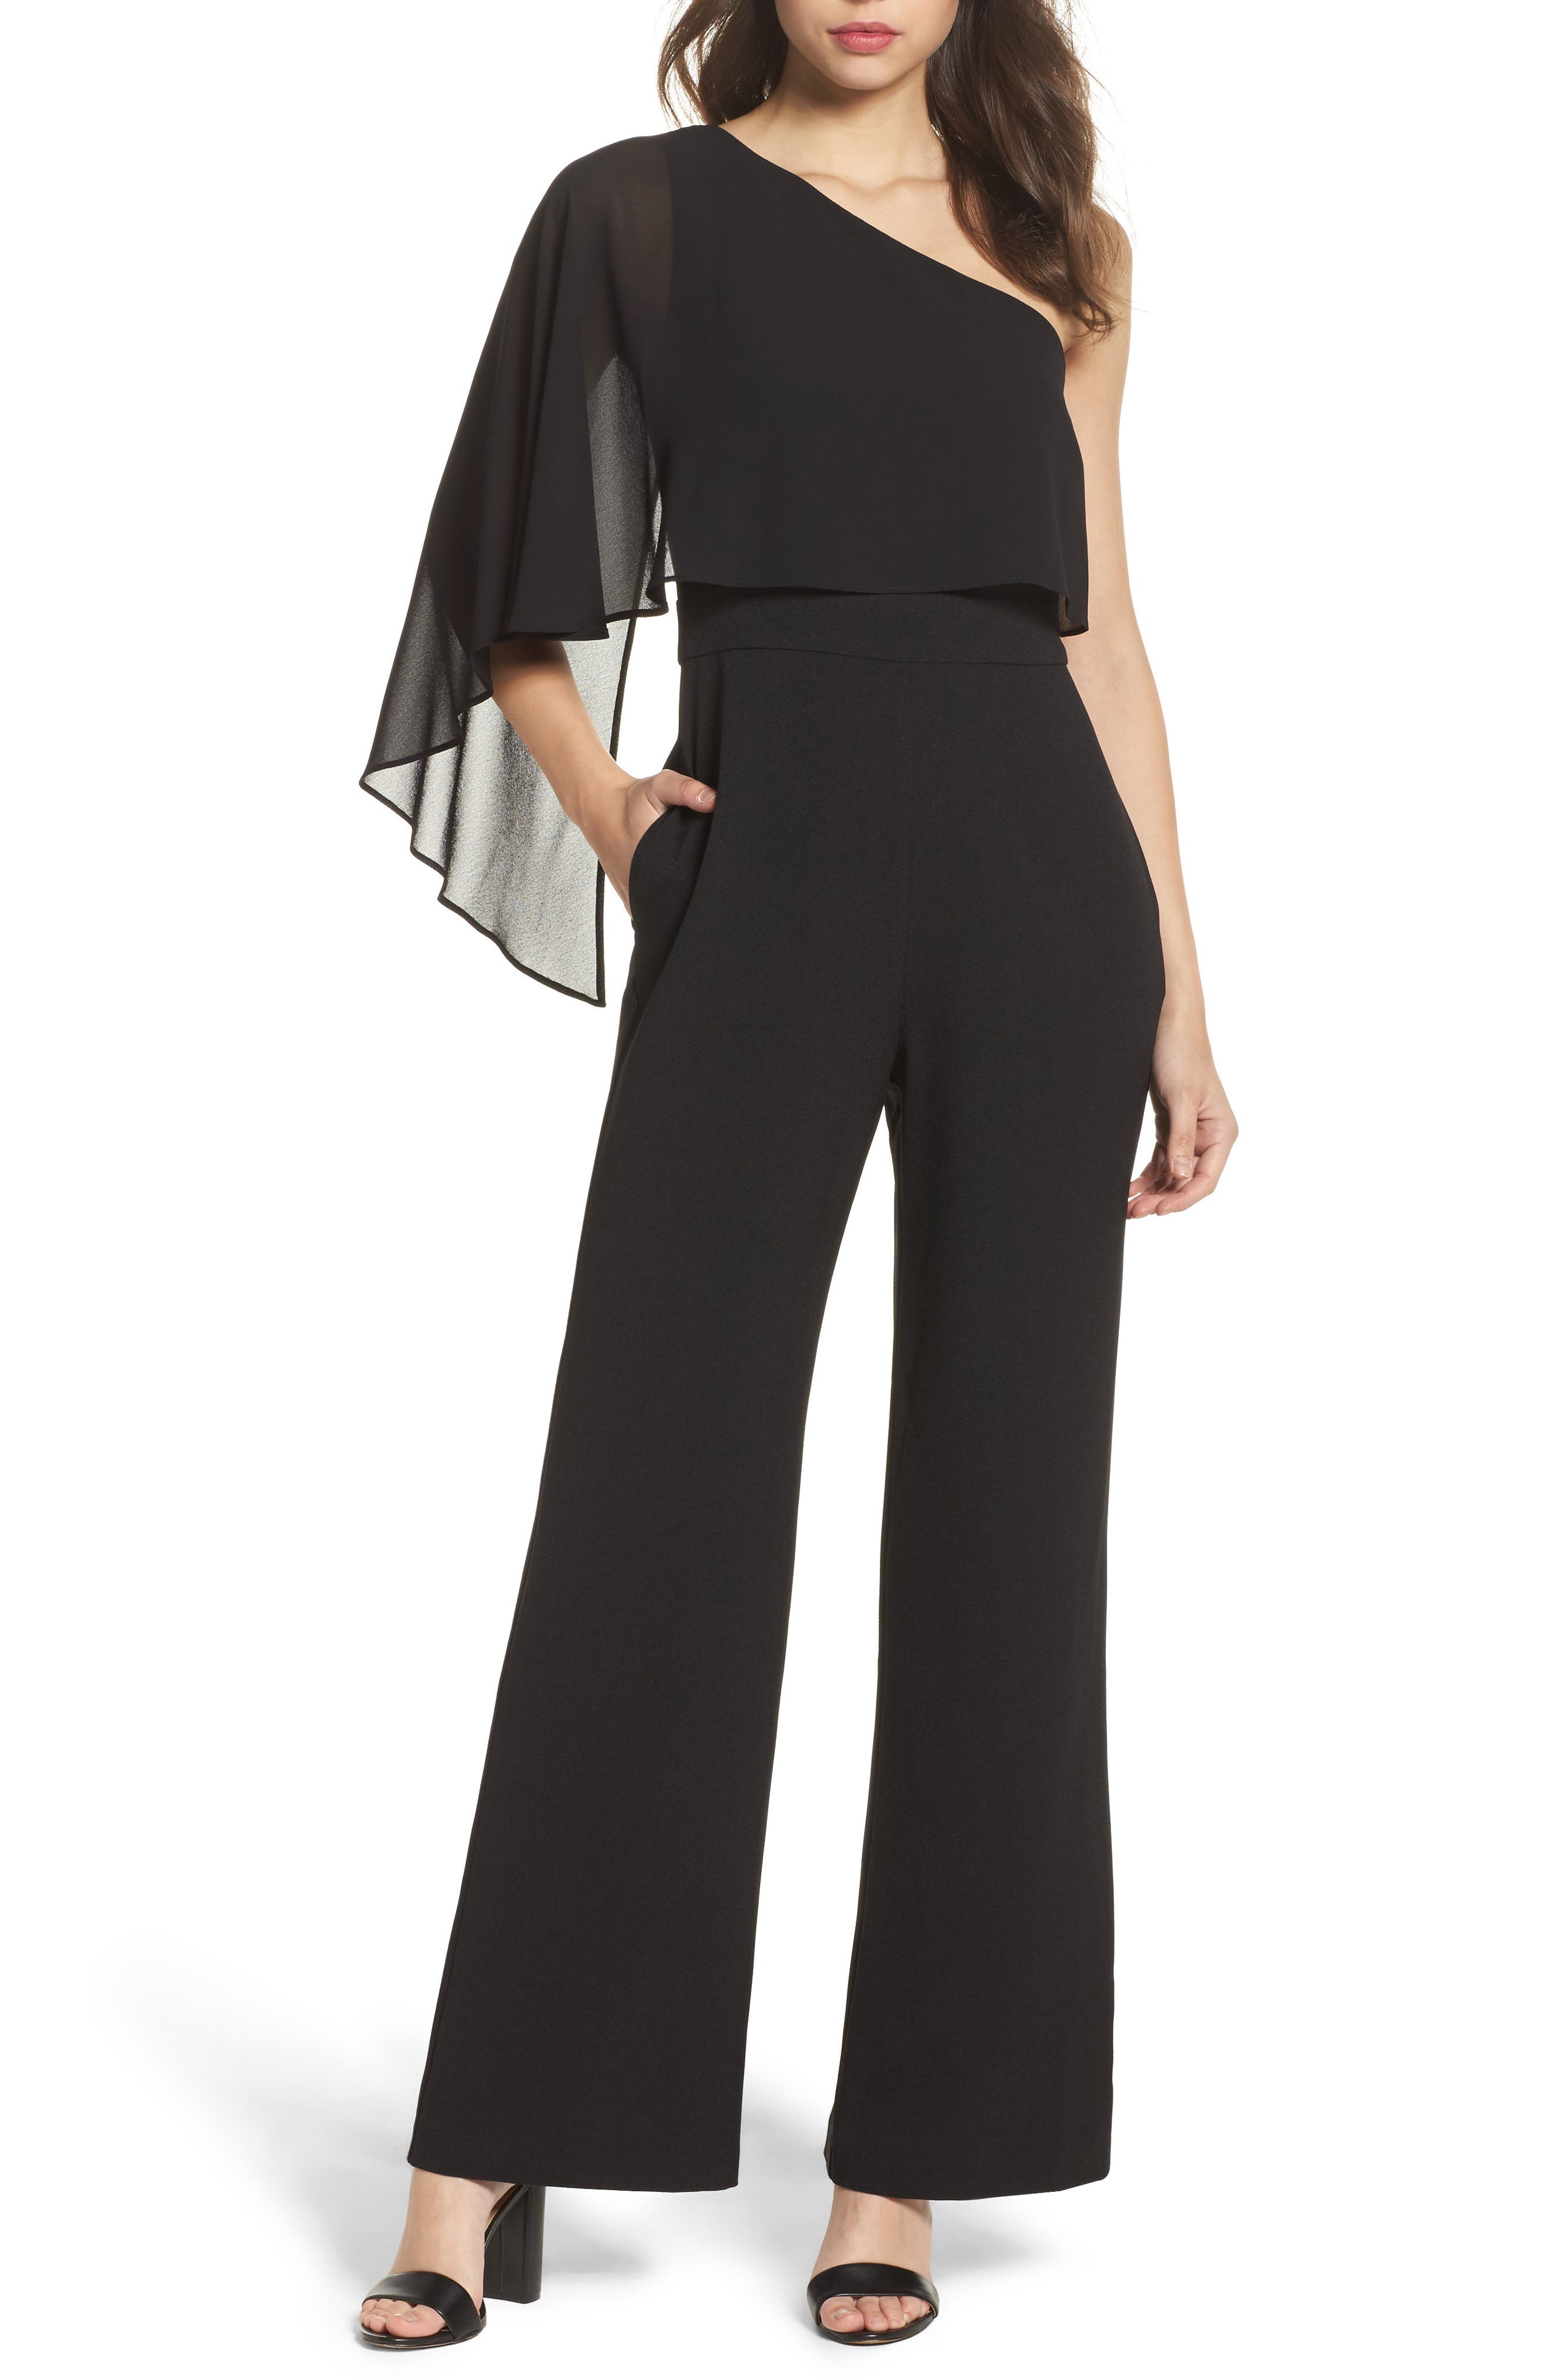 Vince Camuto Cape Overlay One-Shoulder Jumpsuit